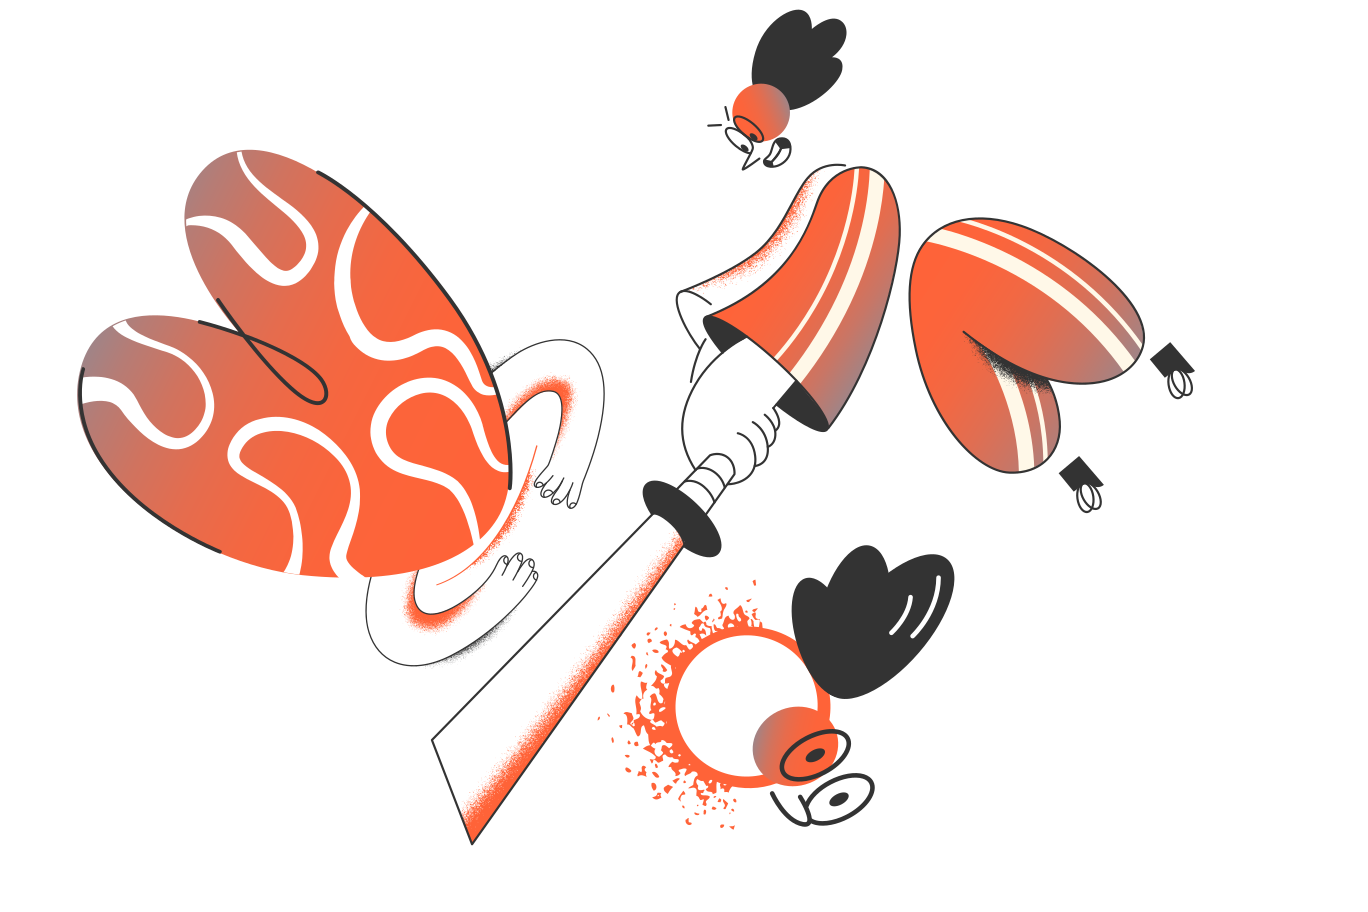 Behead Clipart illustration in PNG, SVG